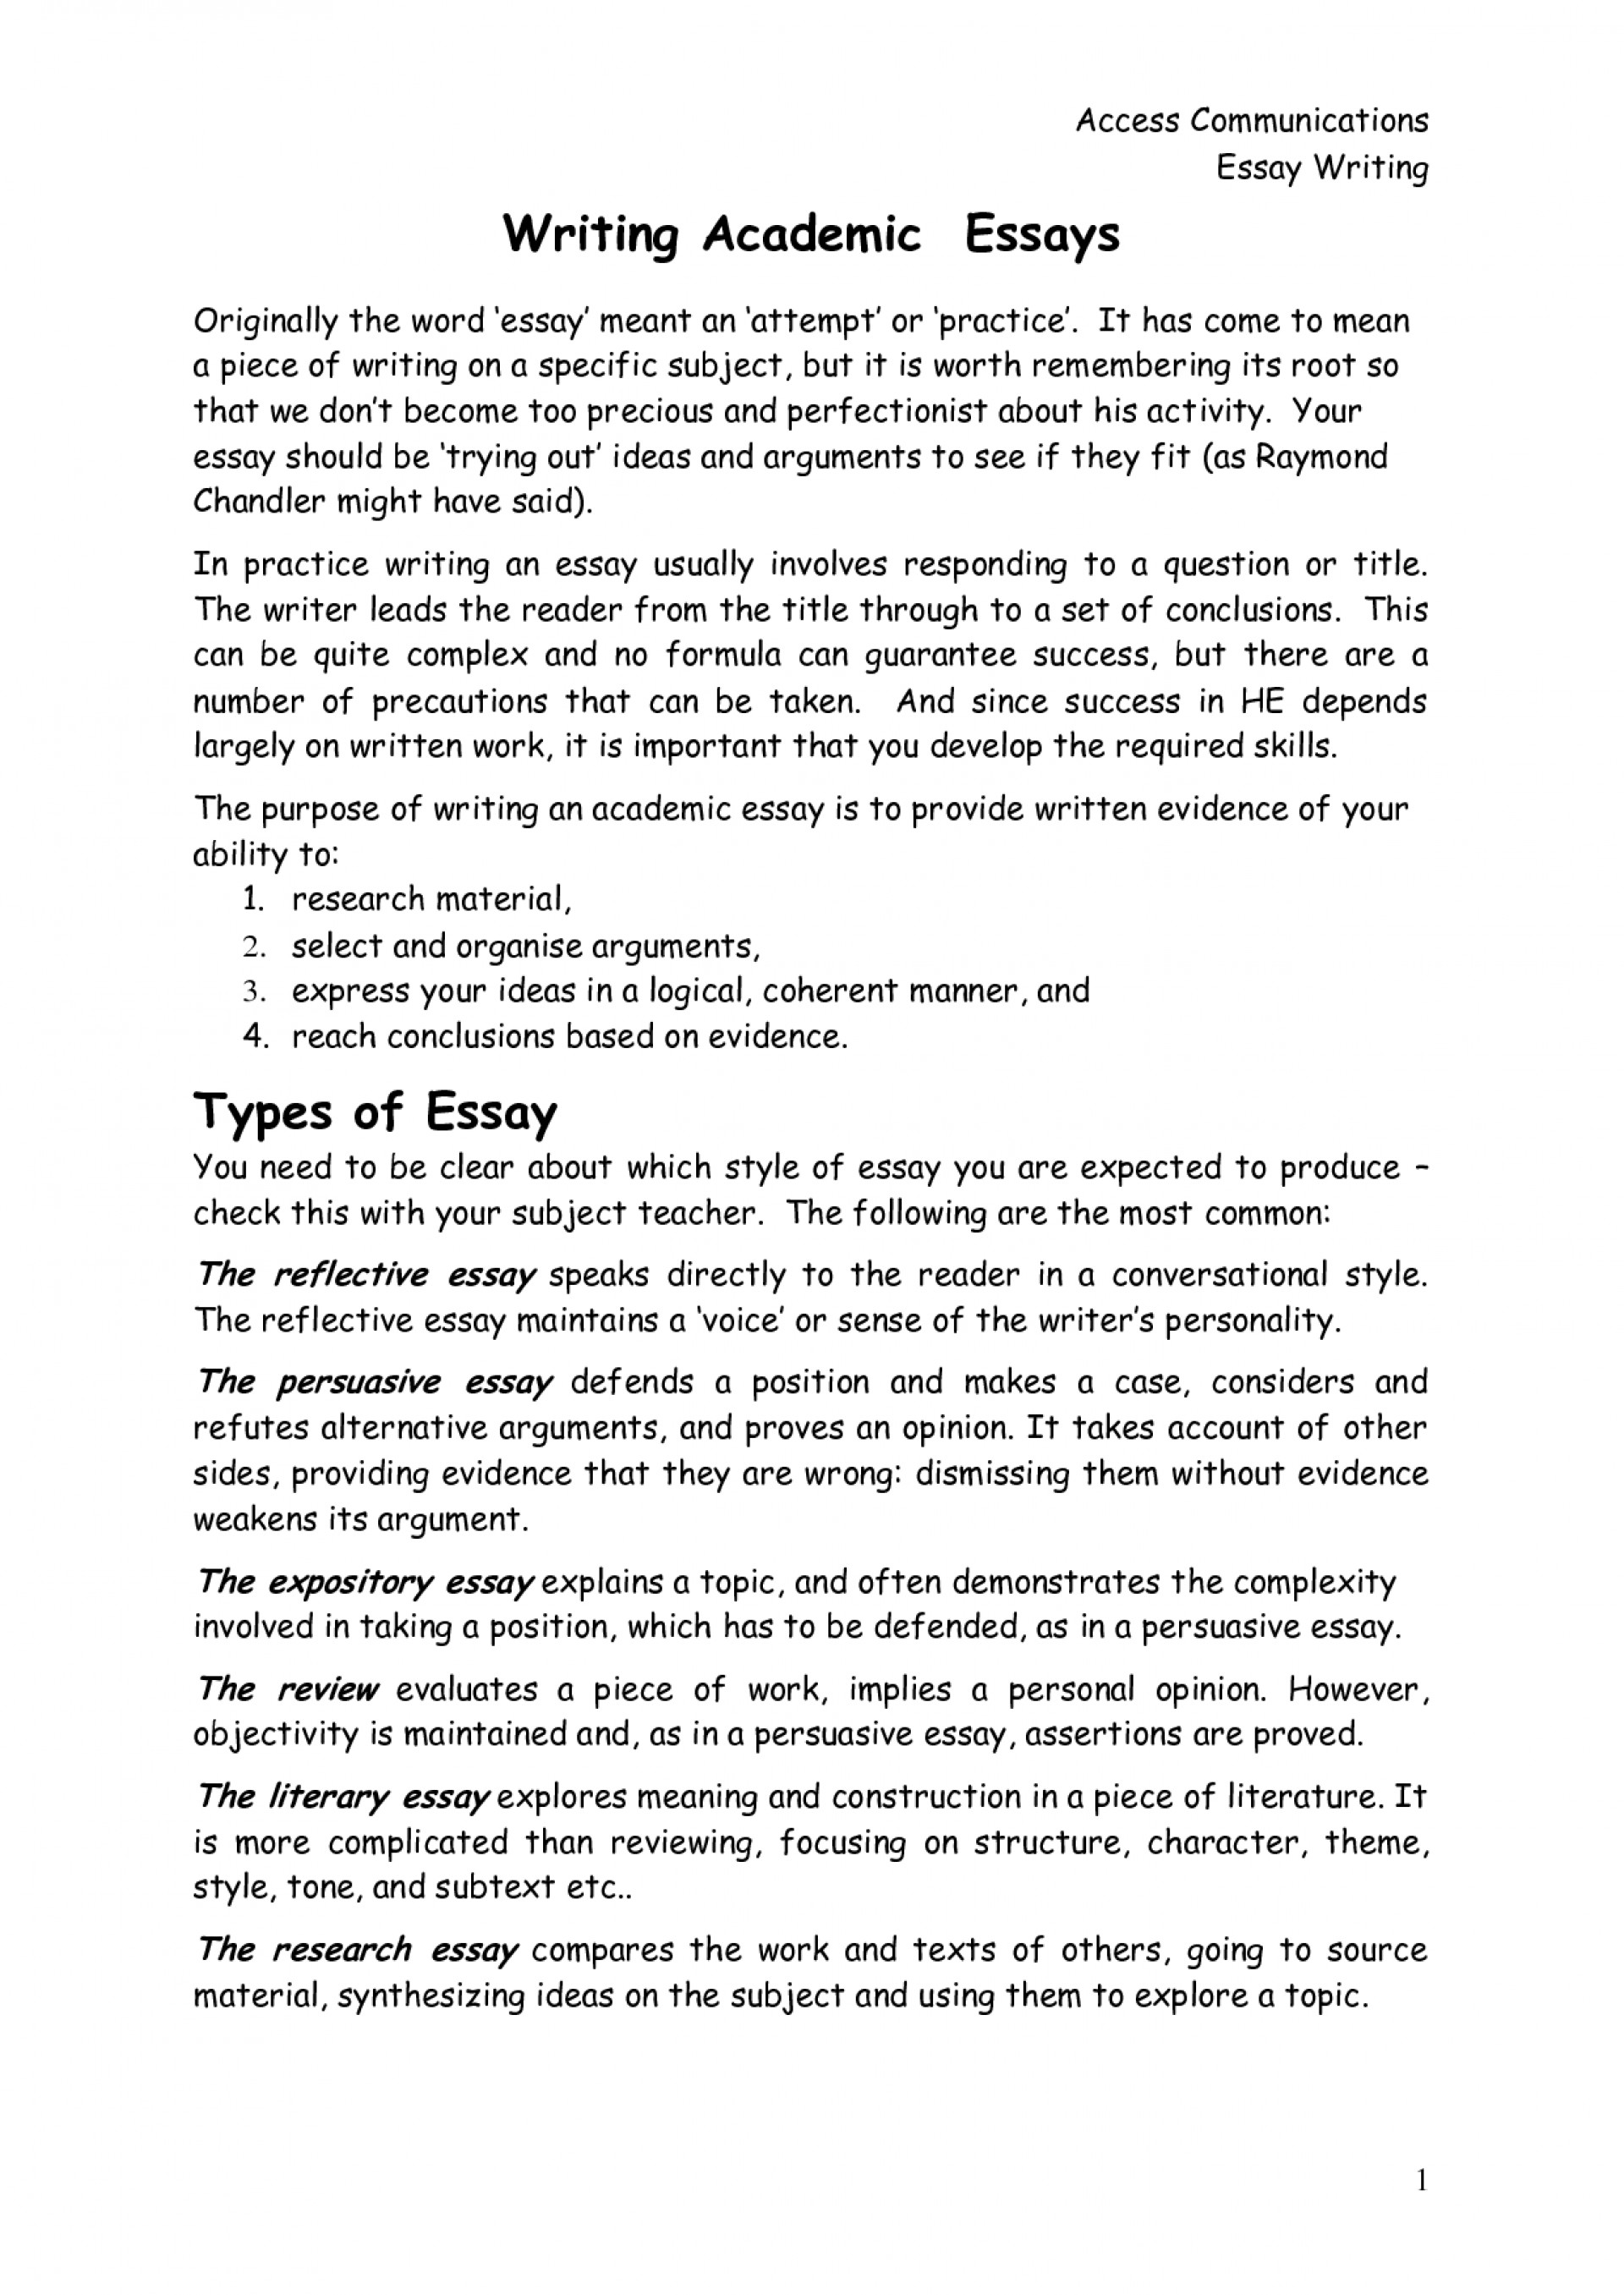 001 Example Academic Research Paper Essay Writing Sample Fuuwz Tense Format Pdf Examples Style Guide Topics Books Fascinating Formal University Samples Harvard 1920